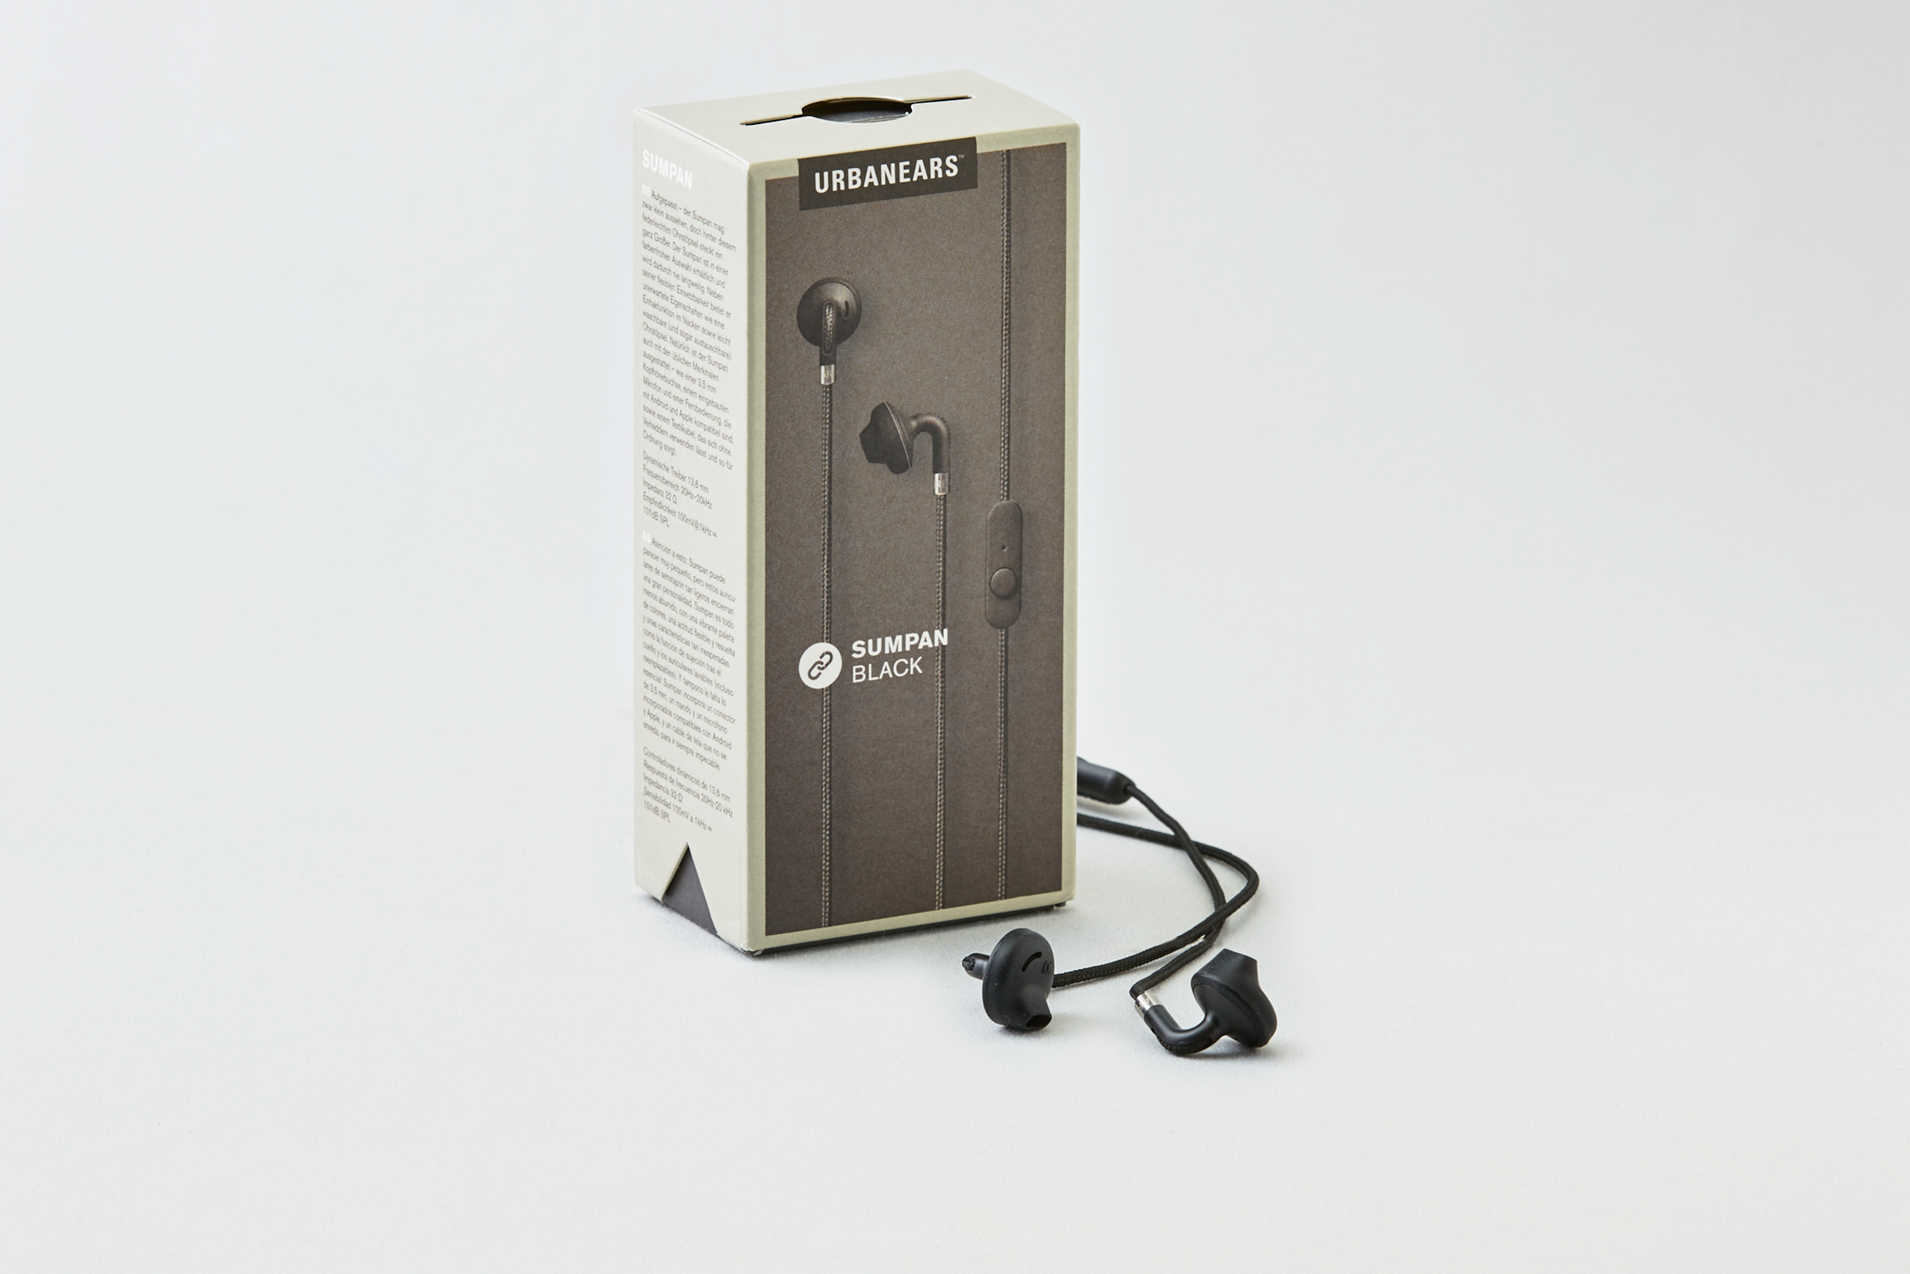 URBANEARS Sumpan The Hooked Up Earbuds